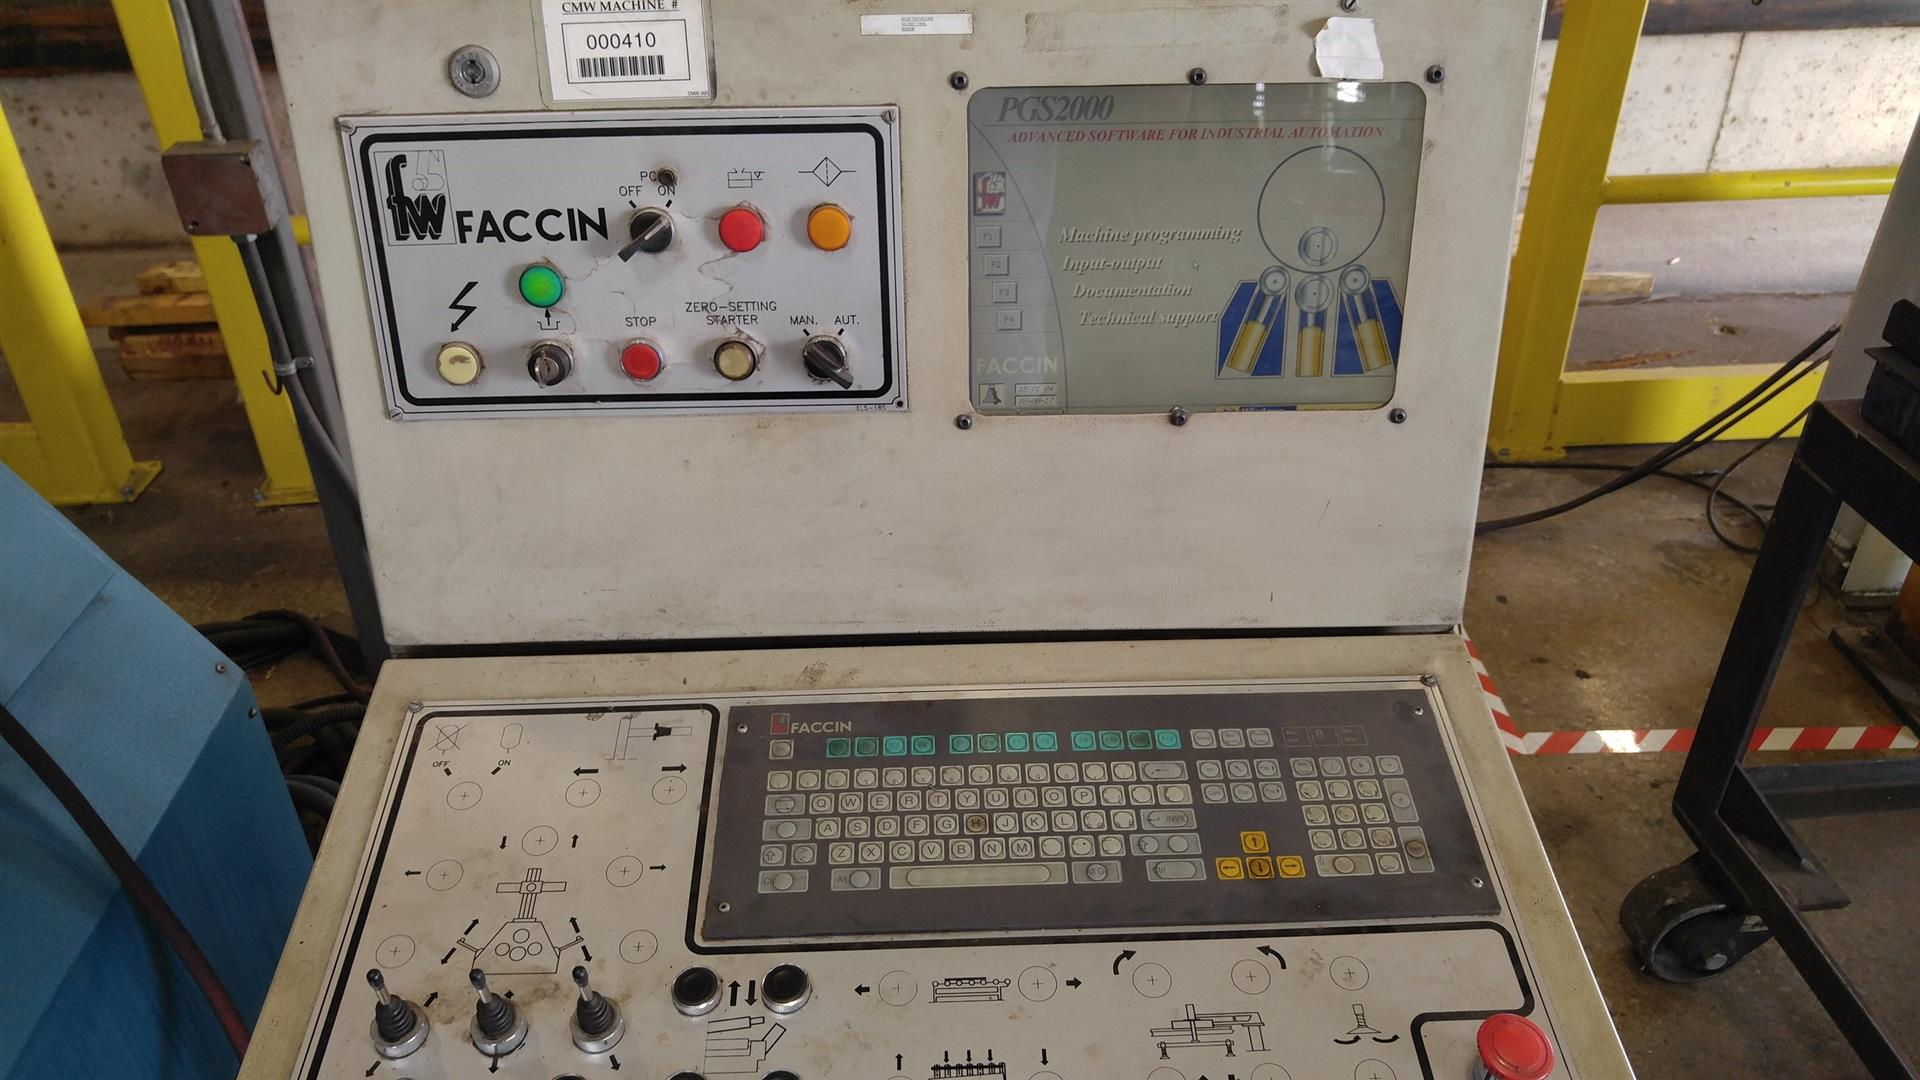 Faccin HEL 3128, Machine:6663, image:2